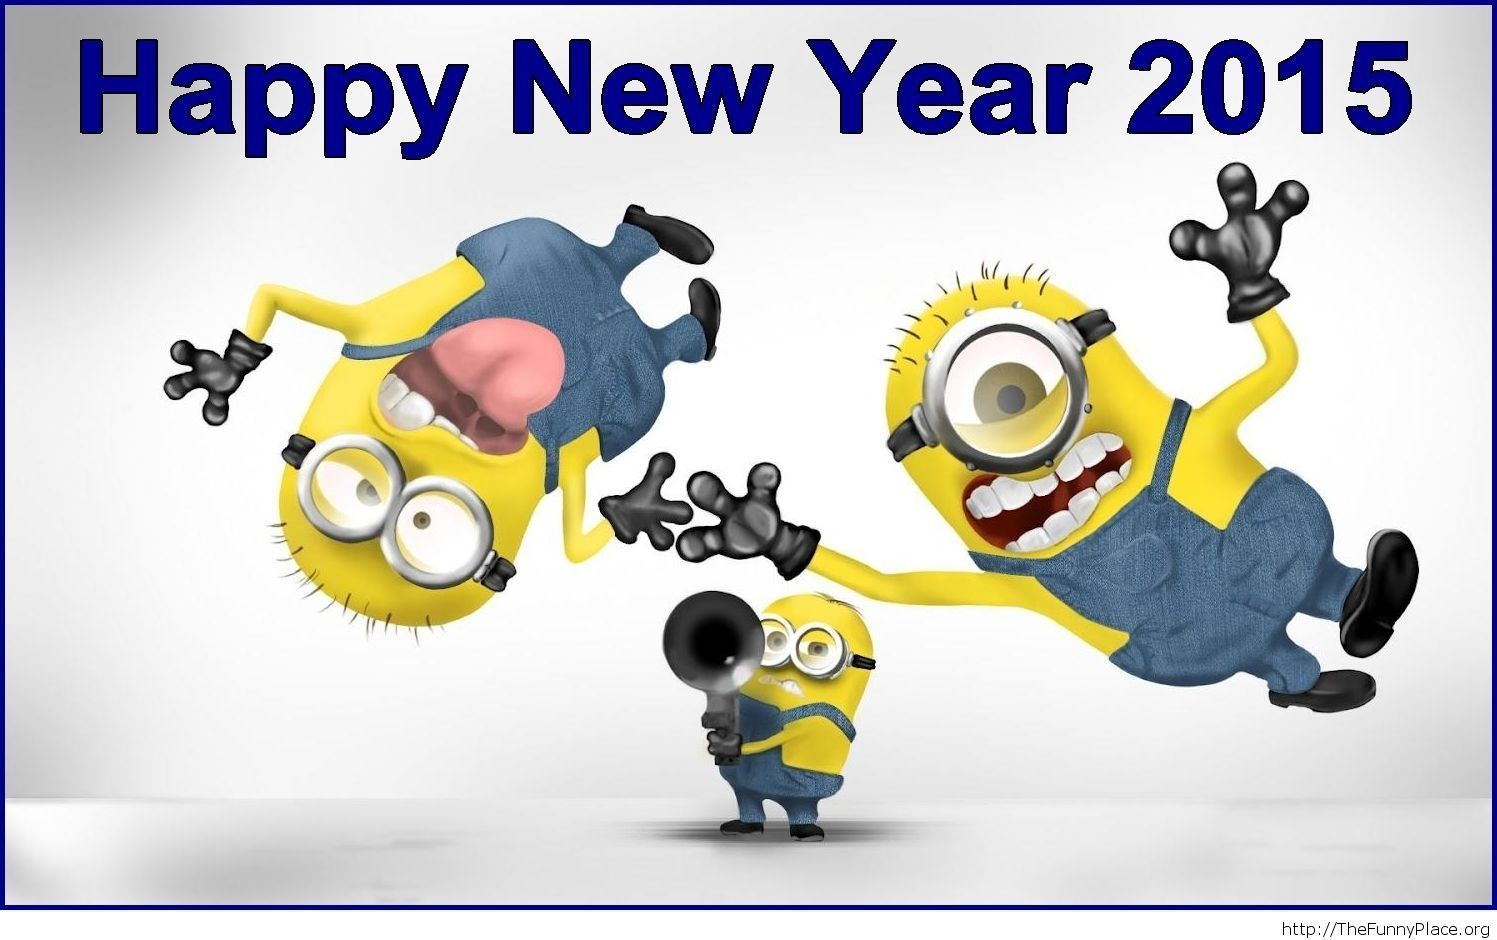 Image of: Funny Despicable Funny Minions Hd Wallpaper Happy New Year Thefunnyplace Funny Minions Hd Wallpaper Happy New Year Thefunnyplace